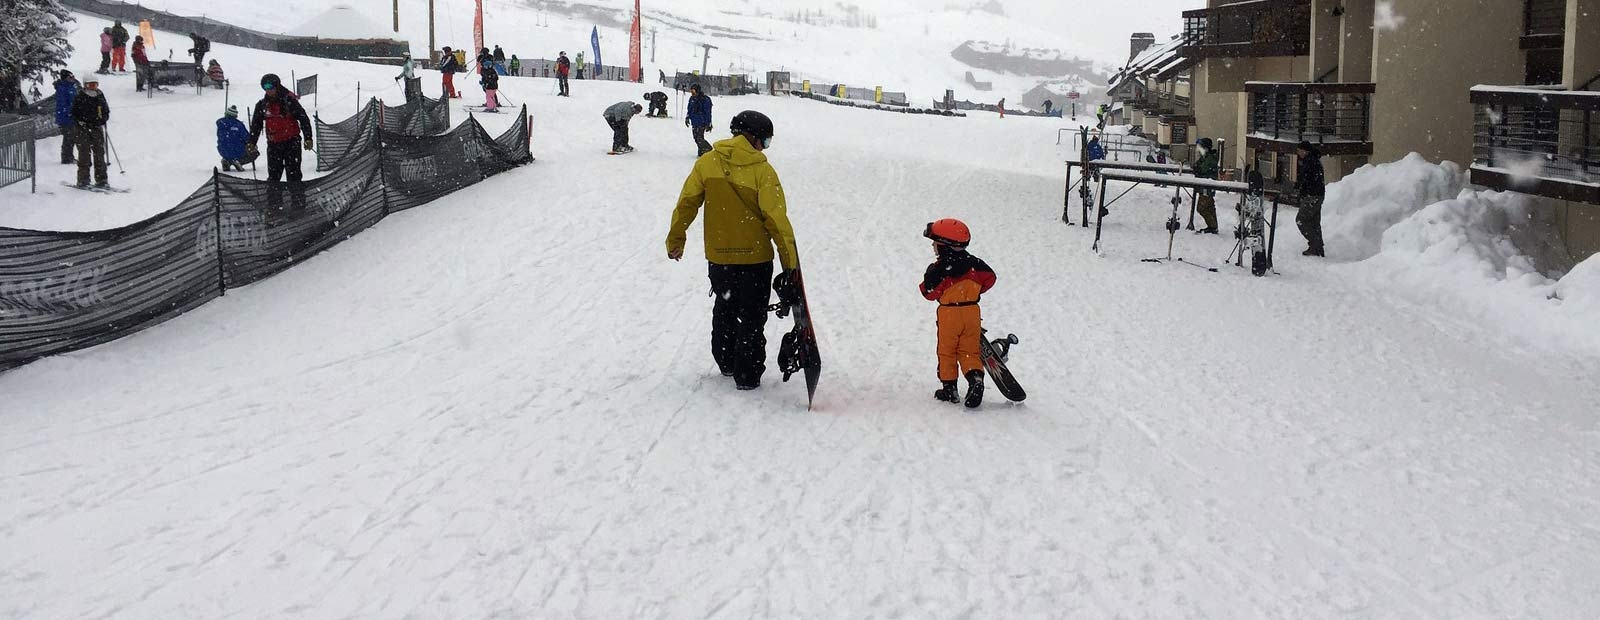 Instructor and child snowboarder walk by the ski lodge